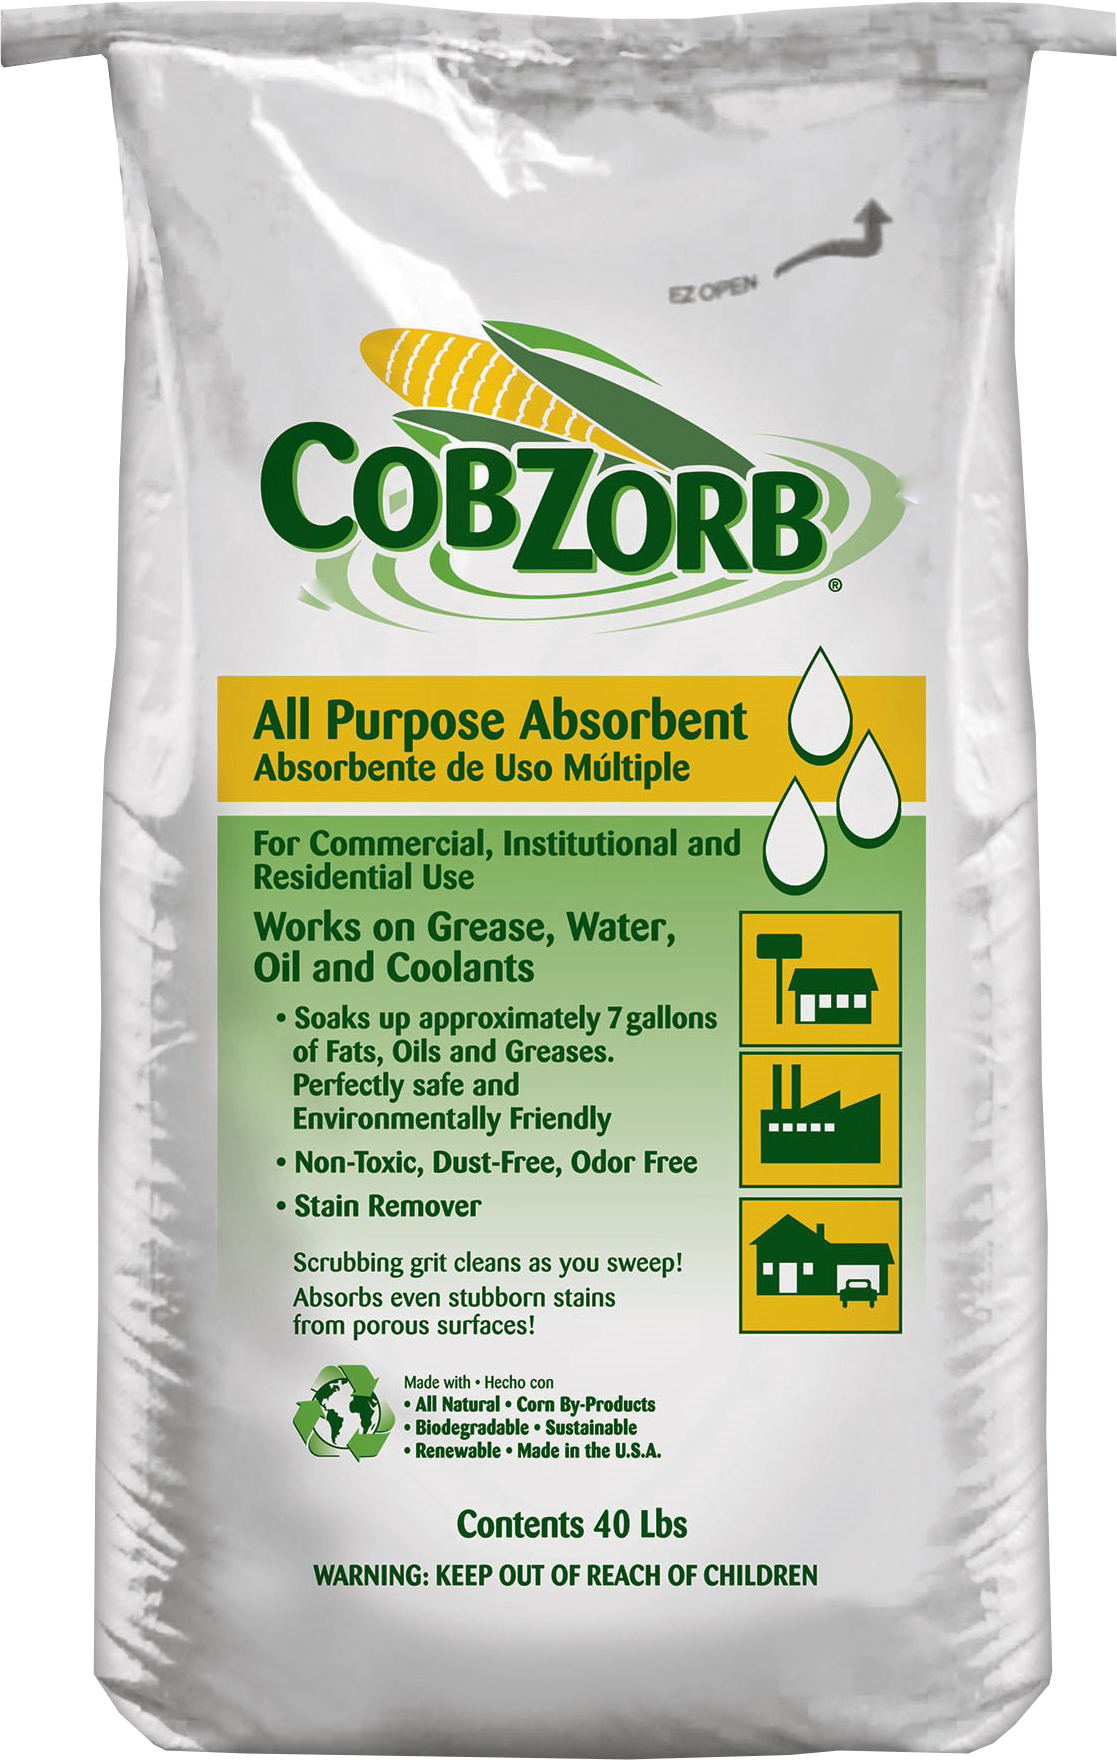 All Absorbent